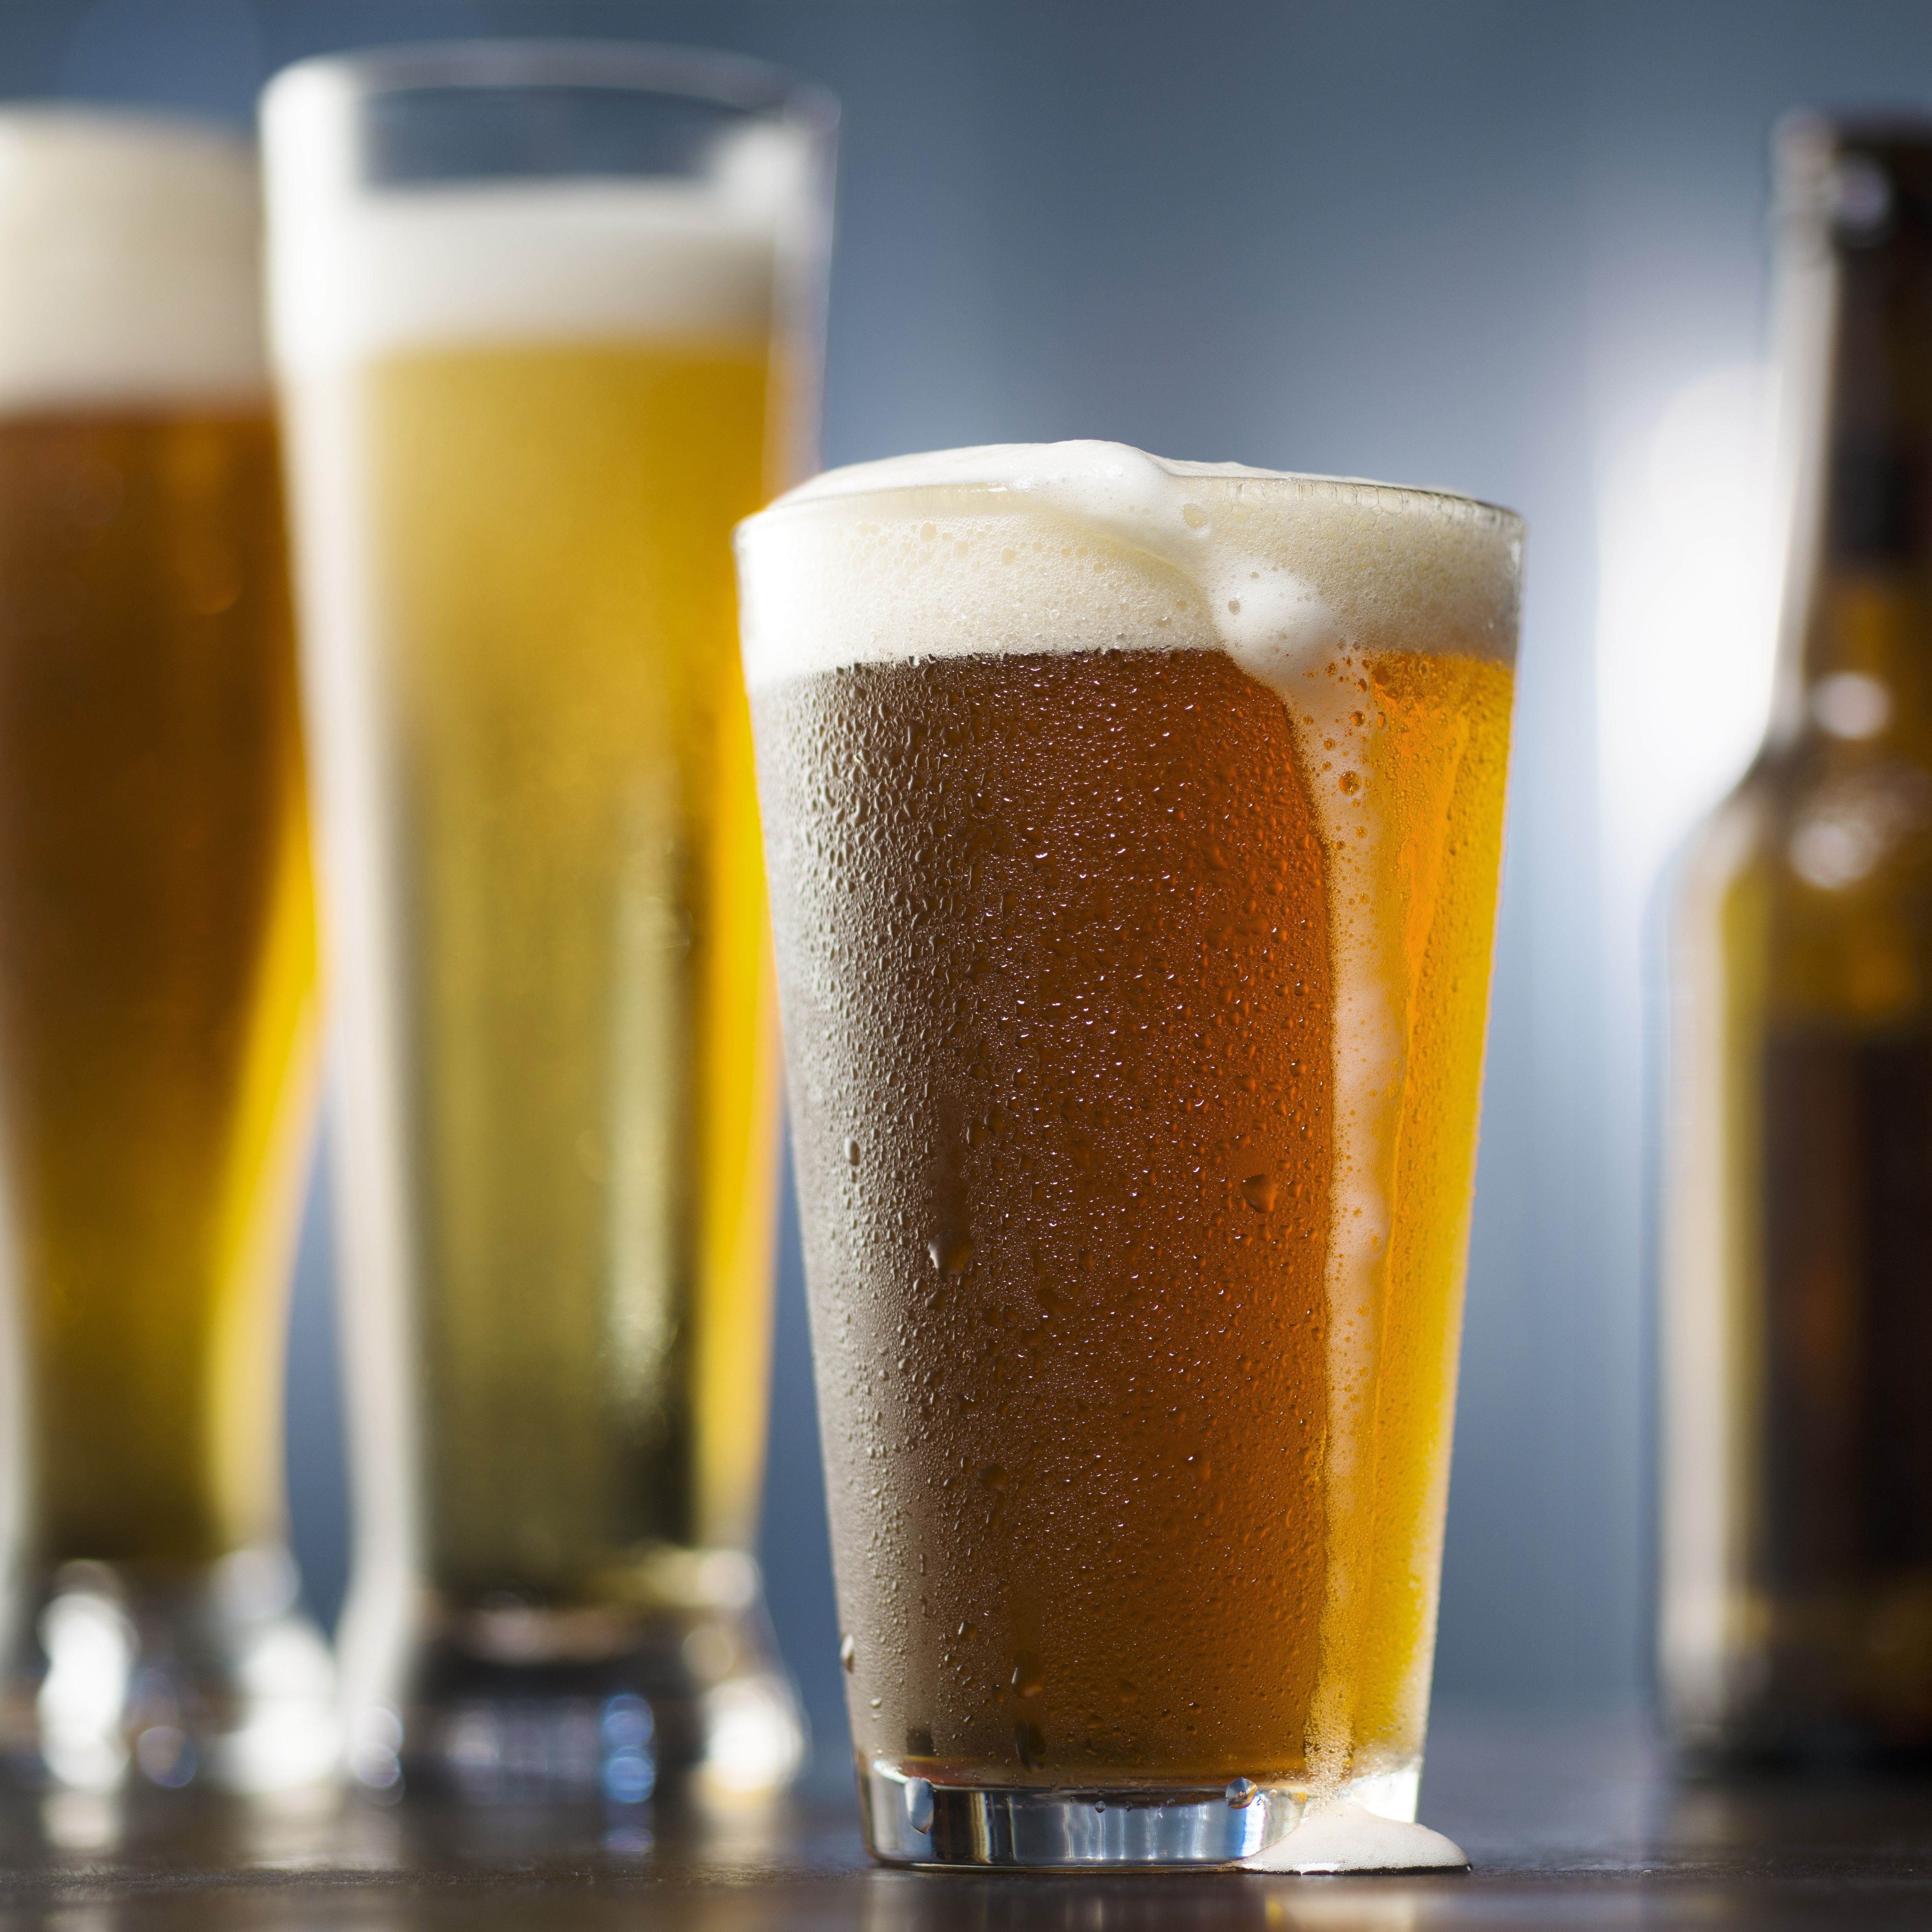 Beer Nutrition Facts by Brand